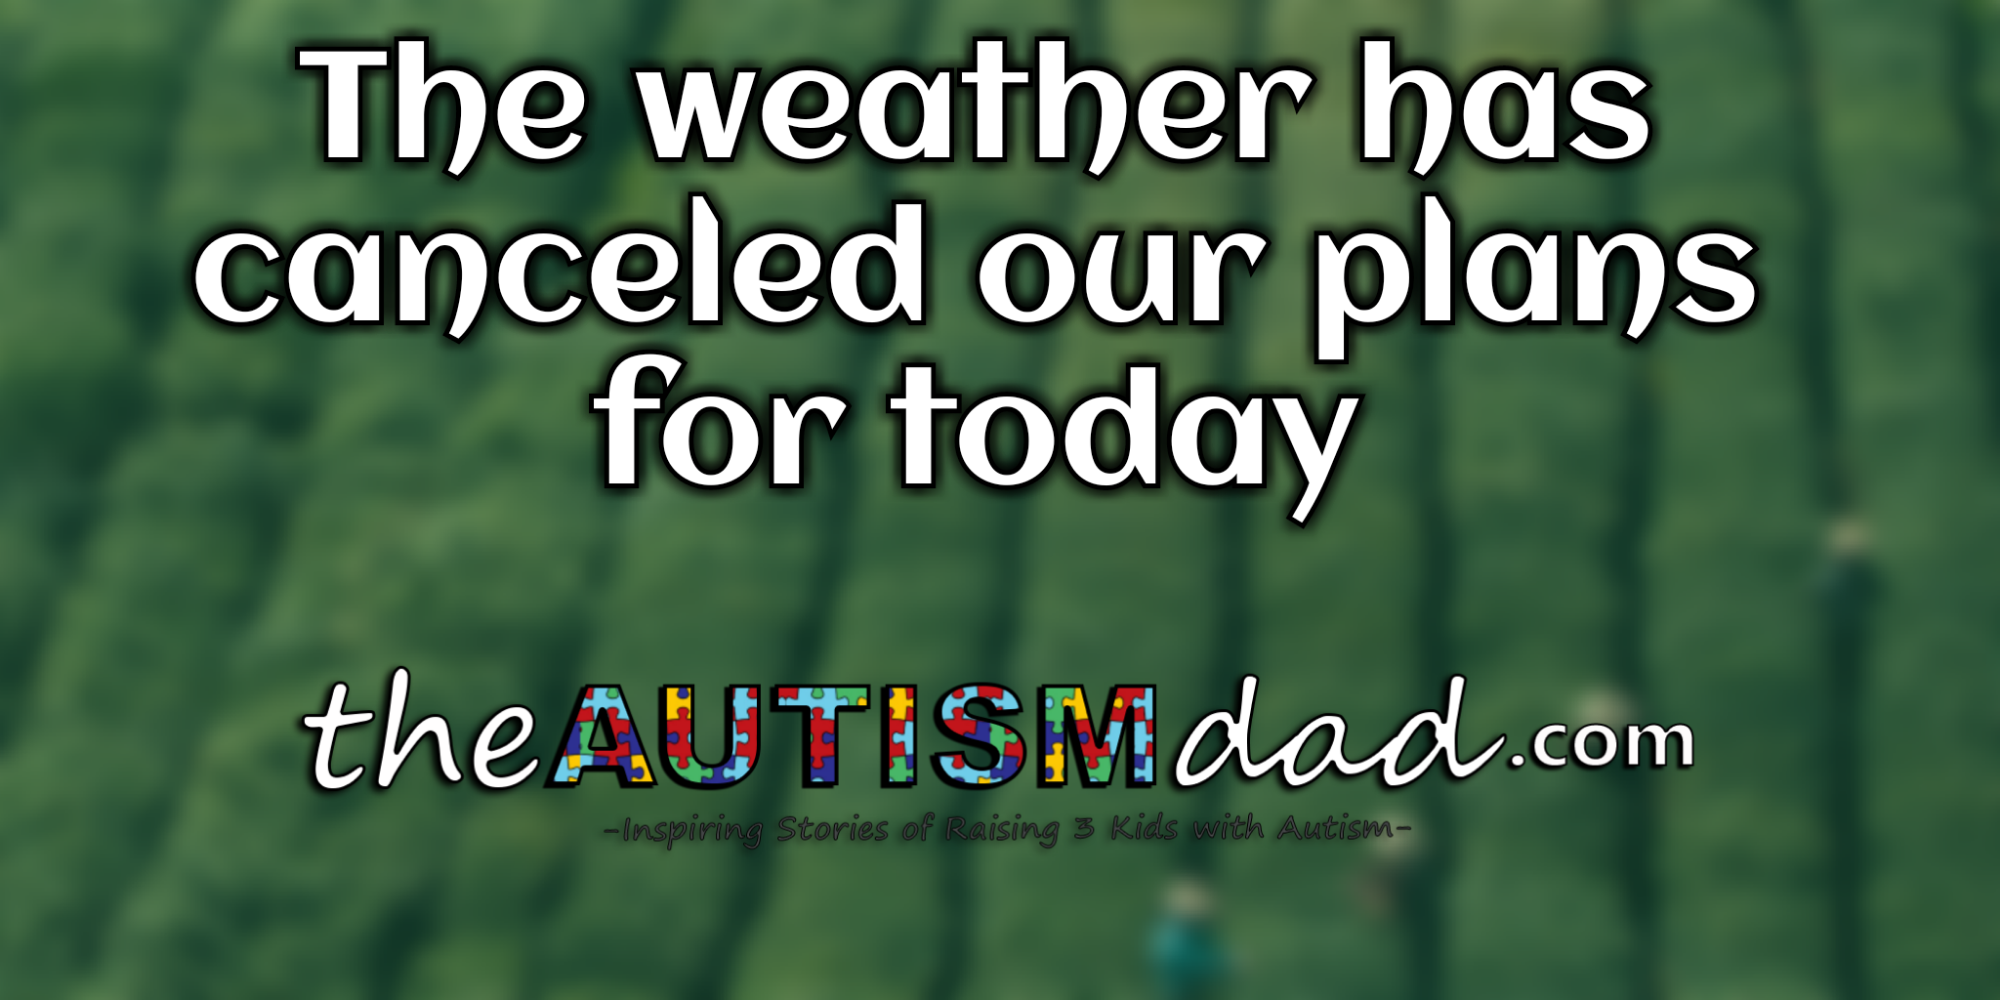 The weather has canceled our plans for today